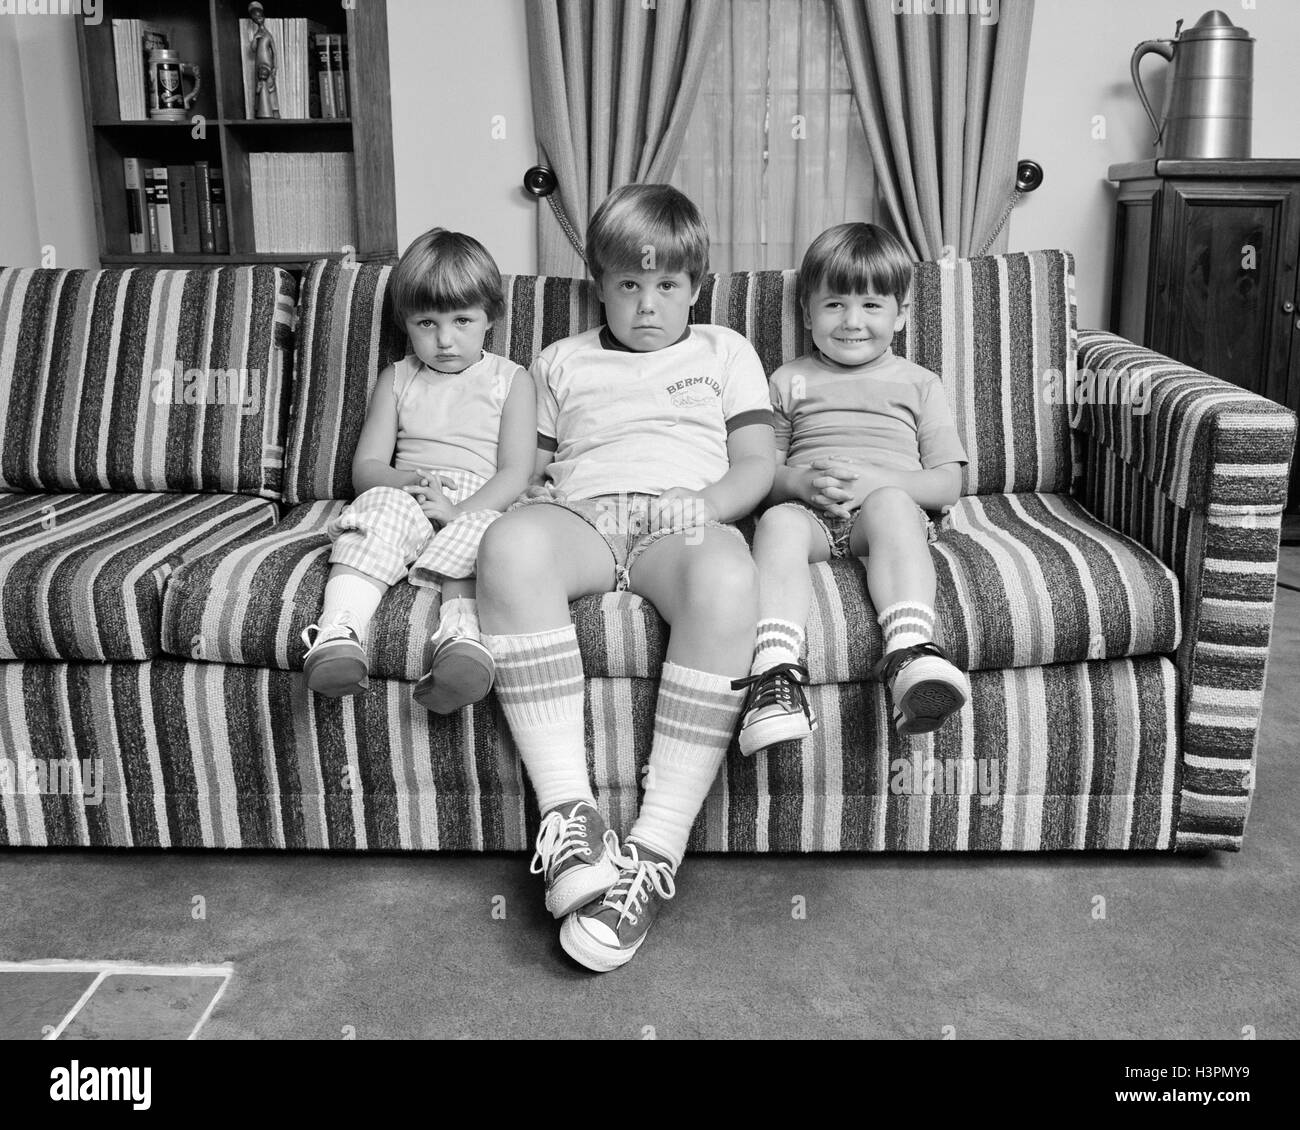 1970s THREE SIBLINGS SITTING ON COUCH LOOKING AT CAMERA - Stock Image